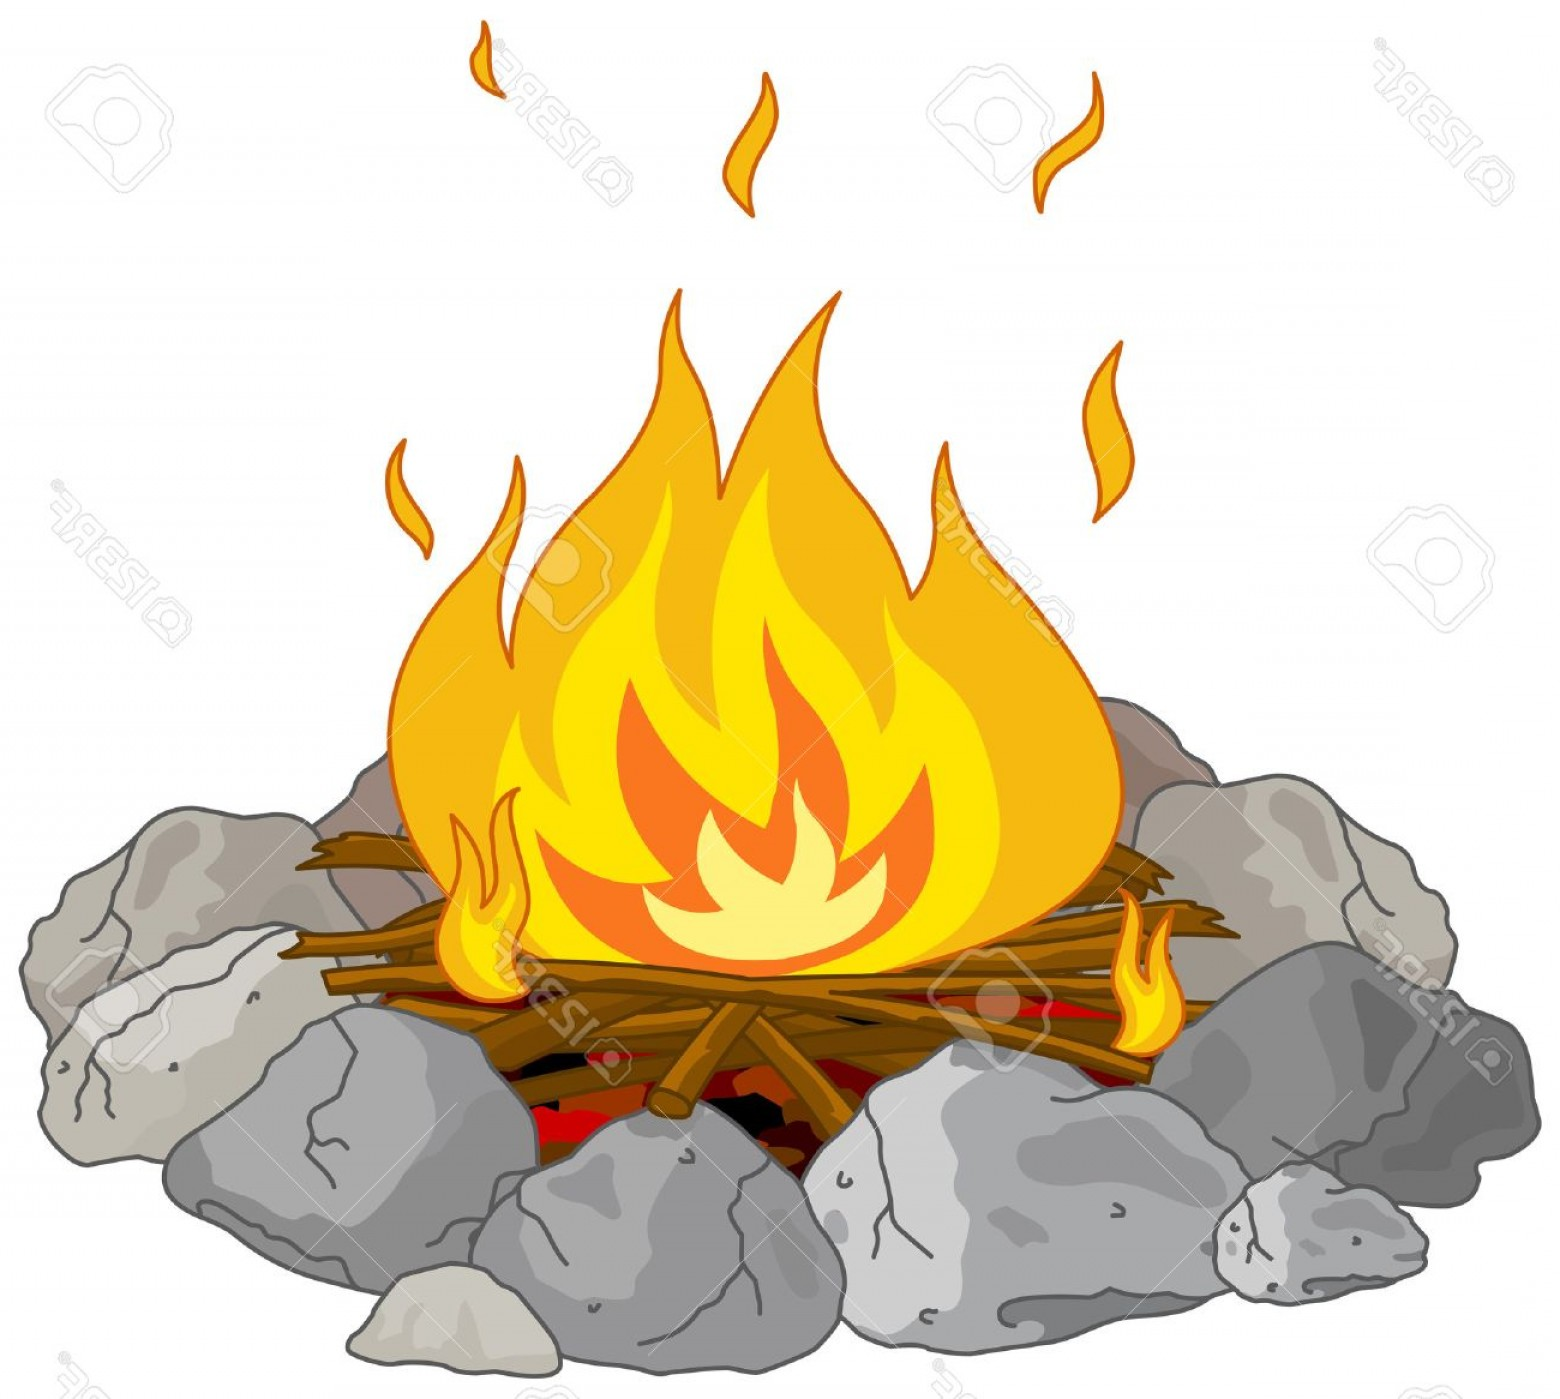 Fire Clip Art Vector: Photostock Vector Illustration Of Flame Into Fire Pit